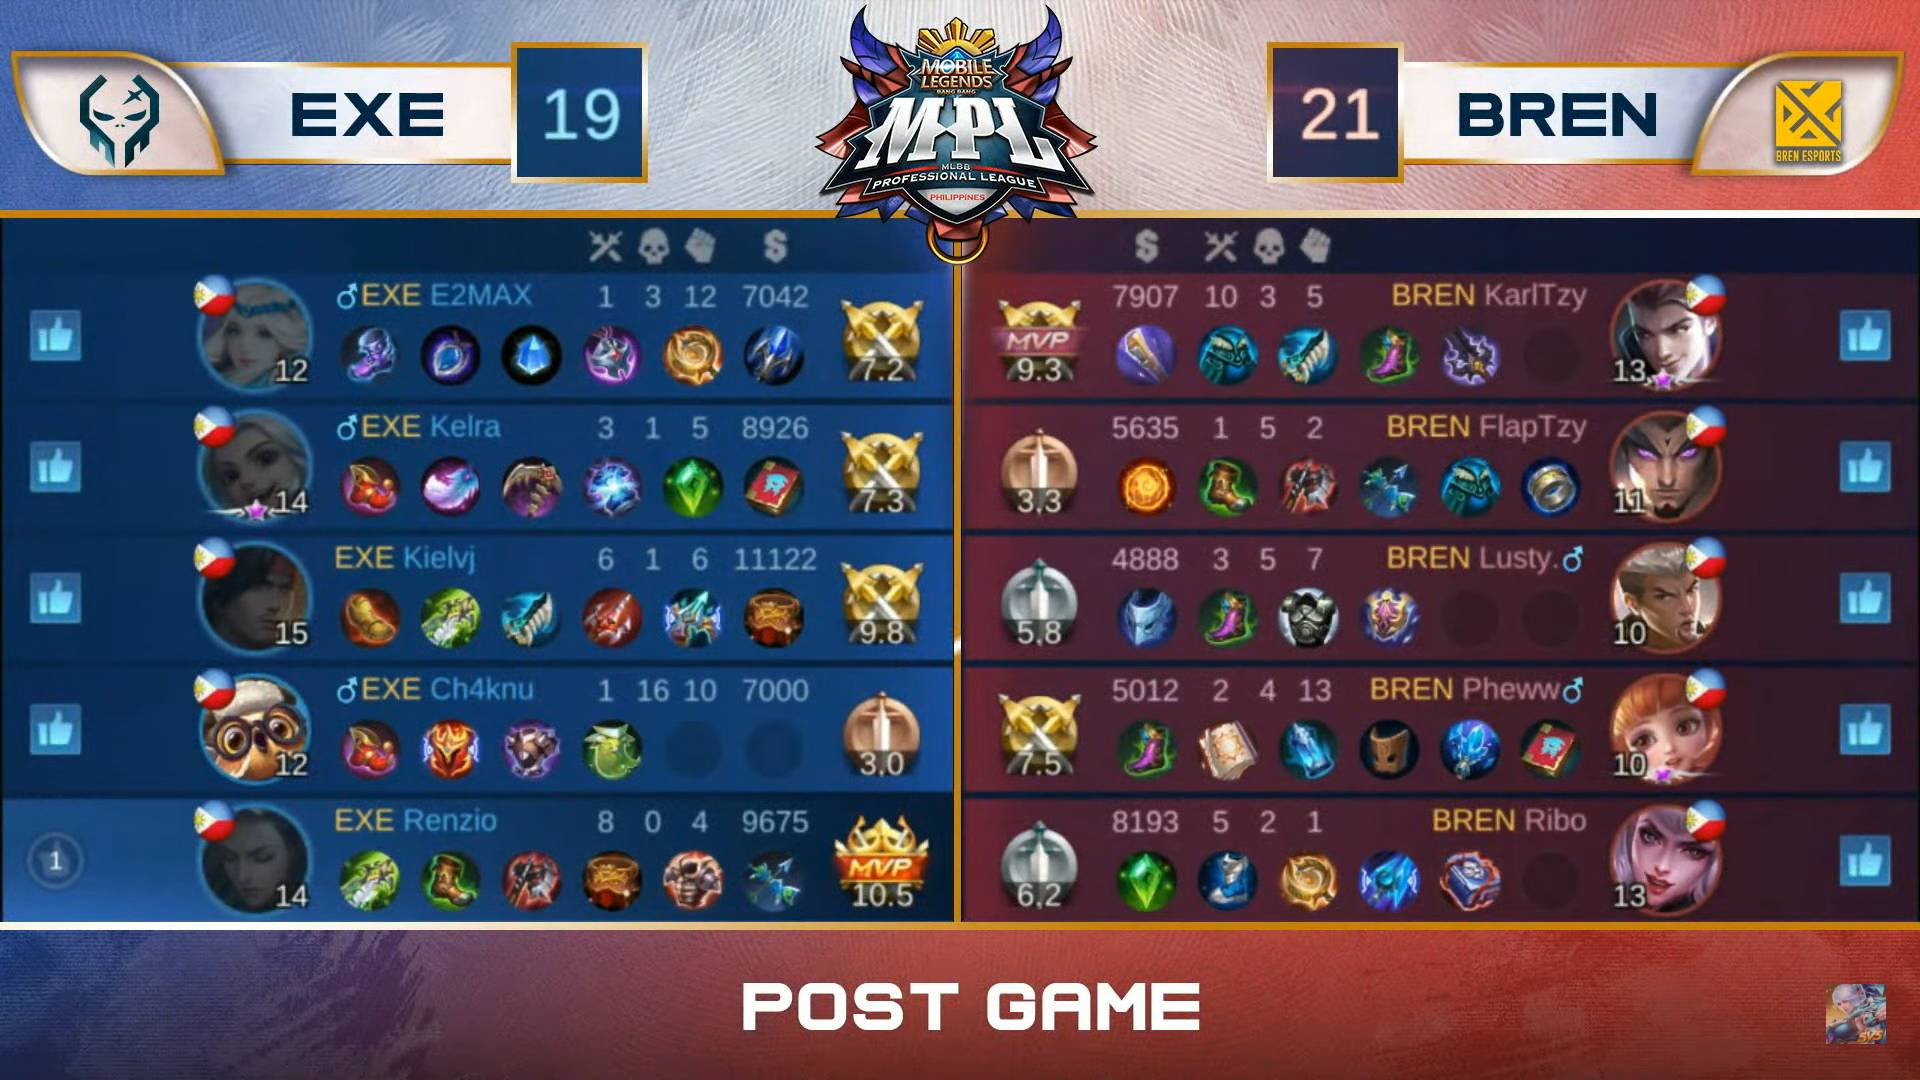 MPL-PH-7-Bren-def-Exe-Game-1 BREN finally breaks through in MPL PH 7, outlasts Execration ESports Mobile Legends MPL-PH News  - philippine sports news